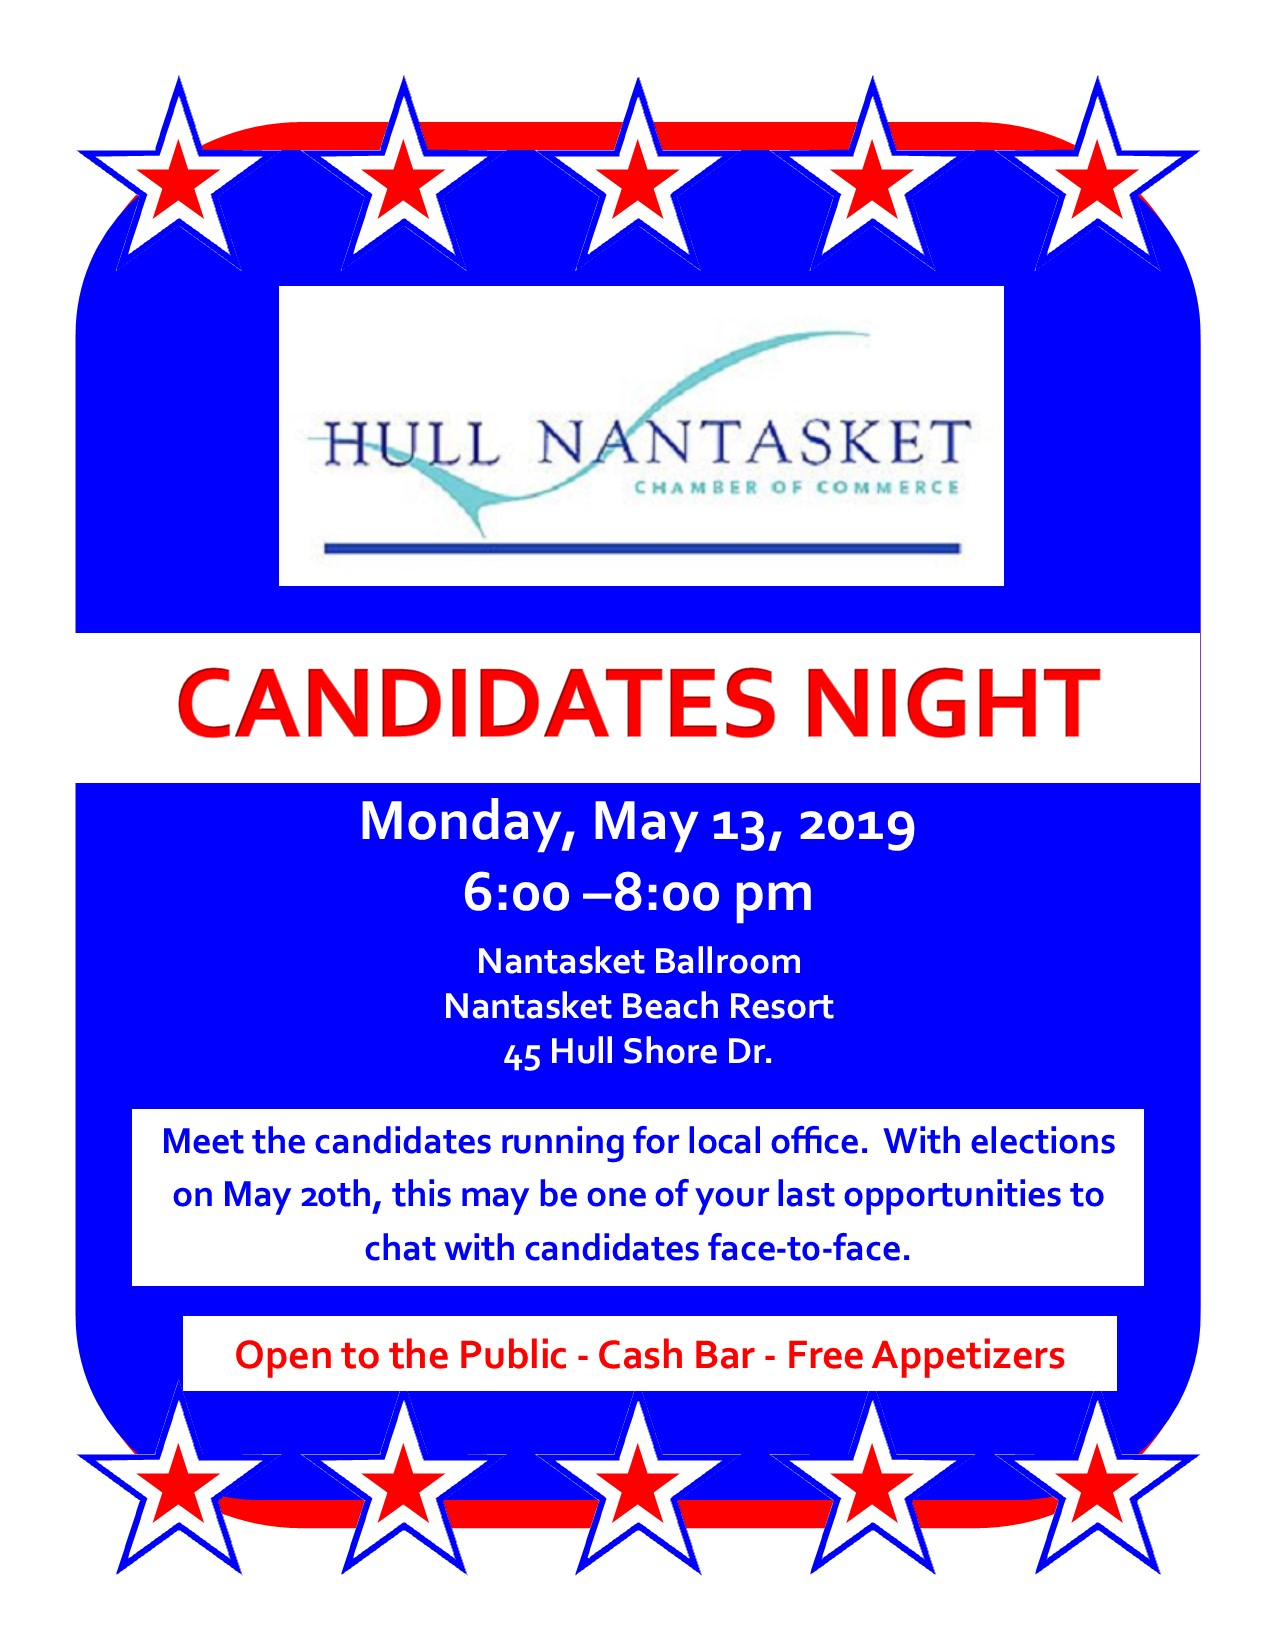 HNCC's Candidates Night, Monday, May 14 from 6-8pm